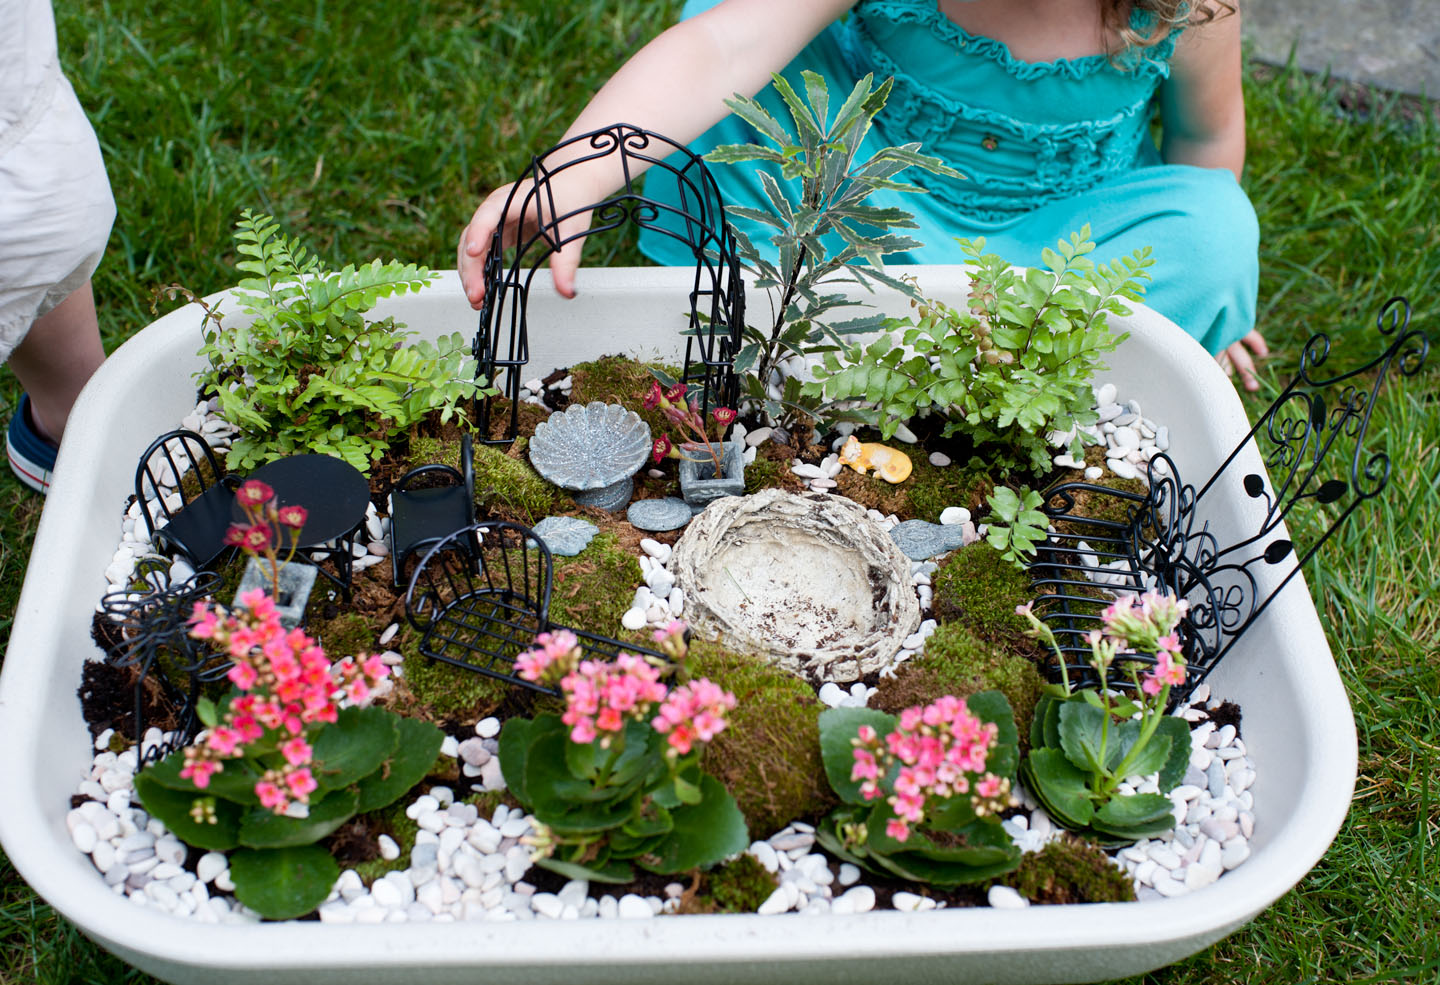 Snips And Snails And Puppy Dog Tails How To Assemble A Fairy Garden